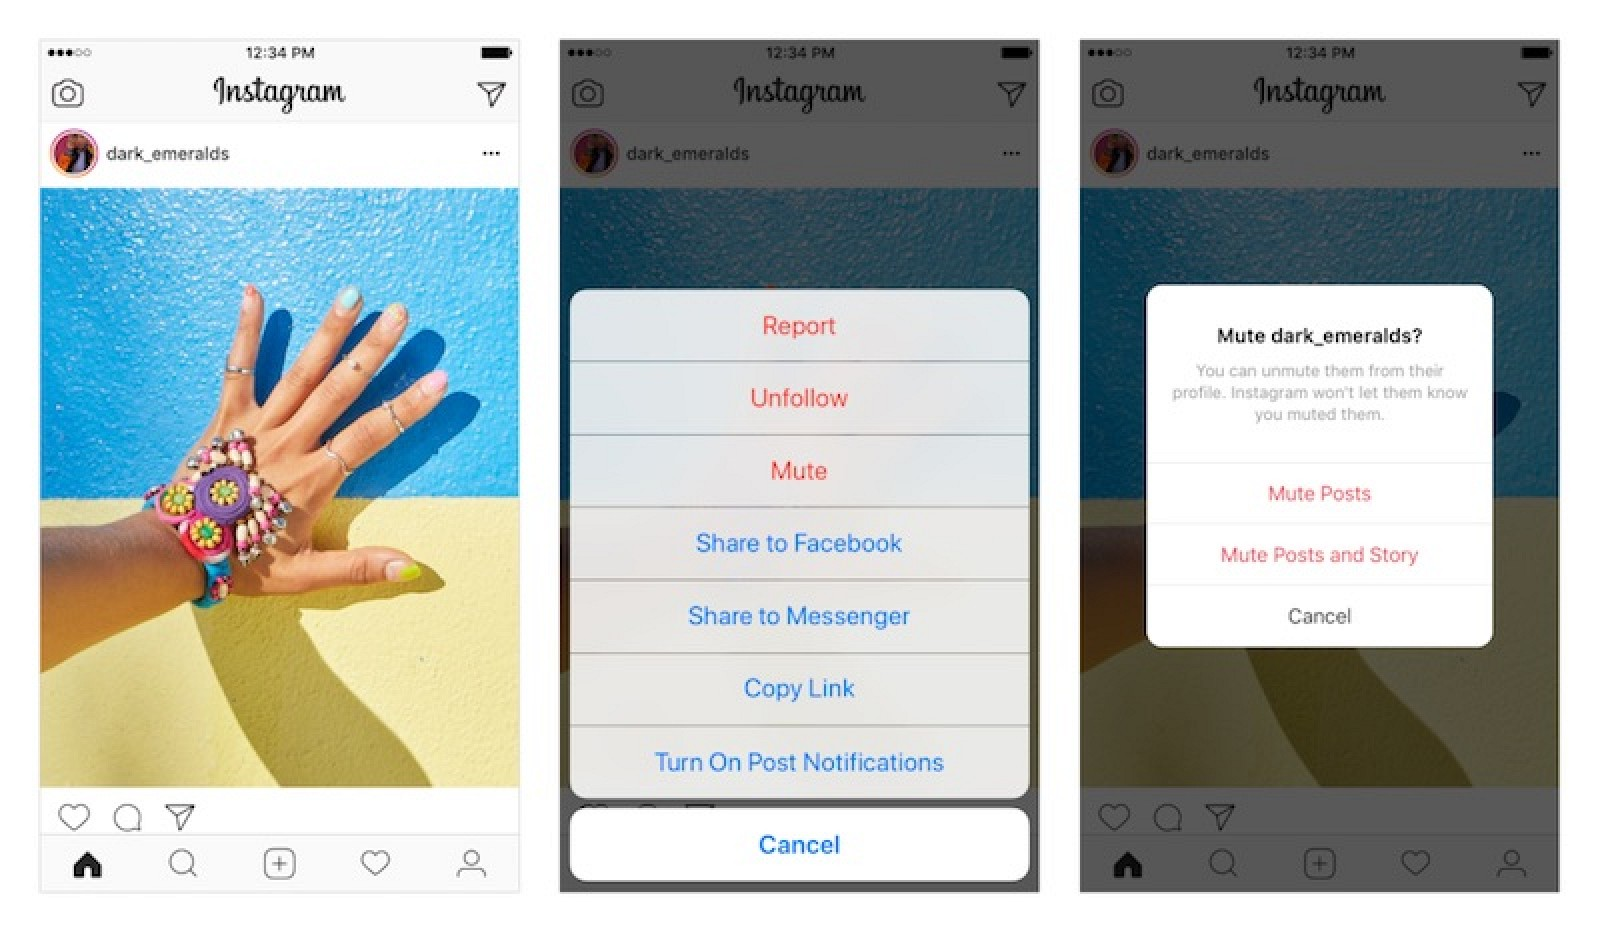 Instagram Announces Mute Feature So You Can Hide Posts